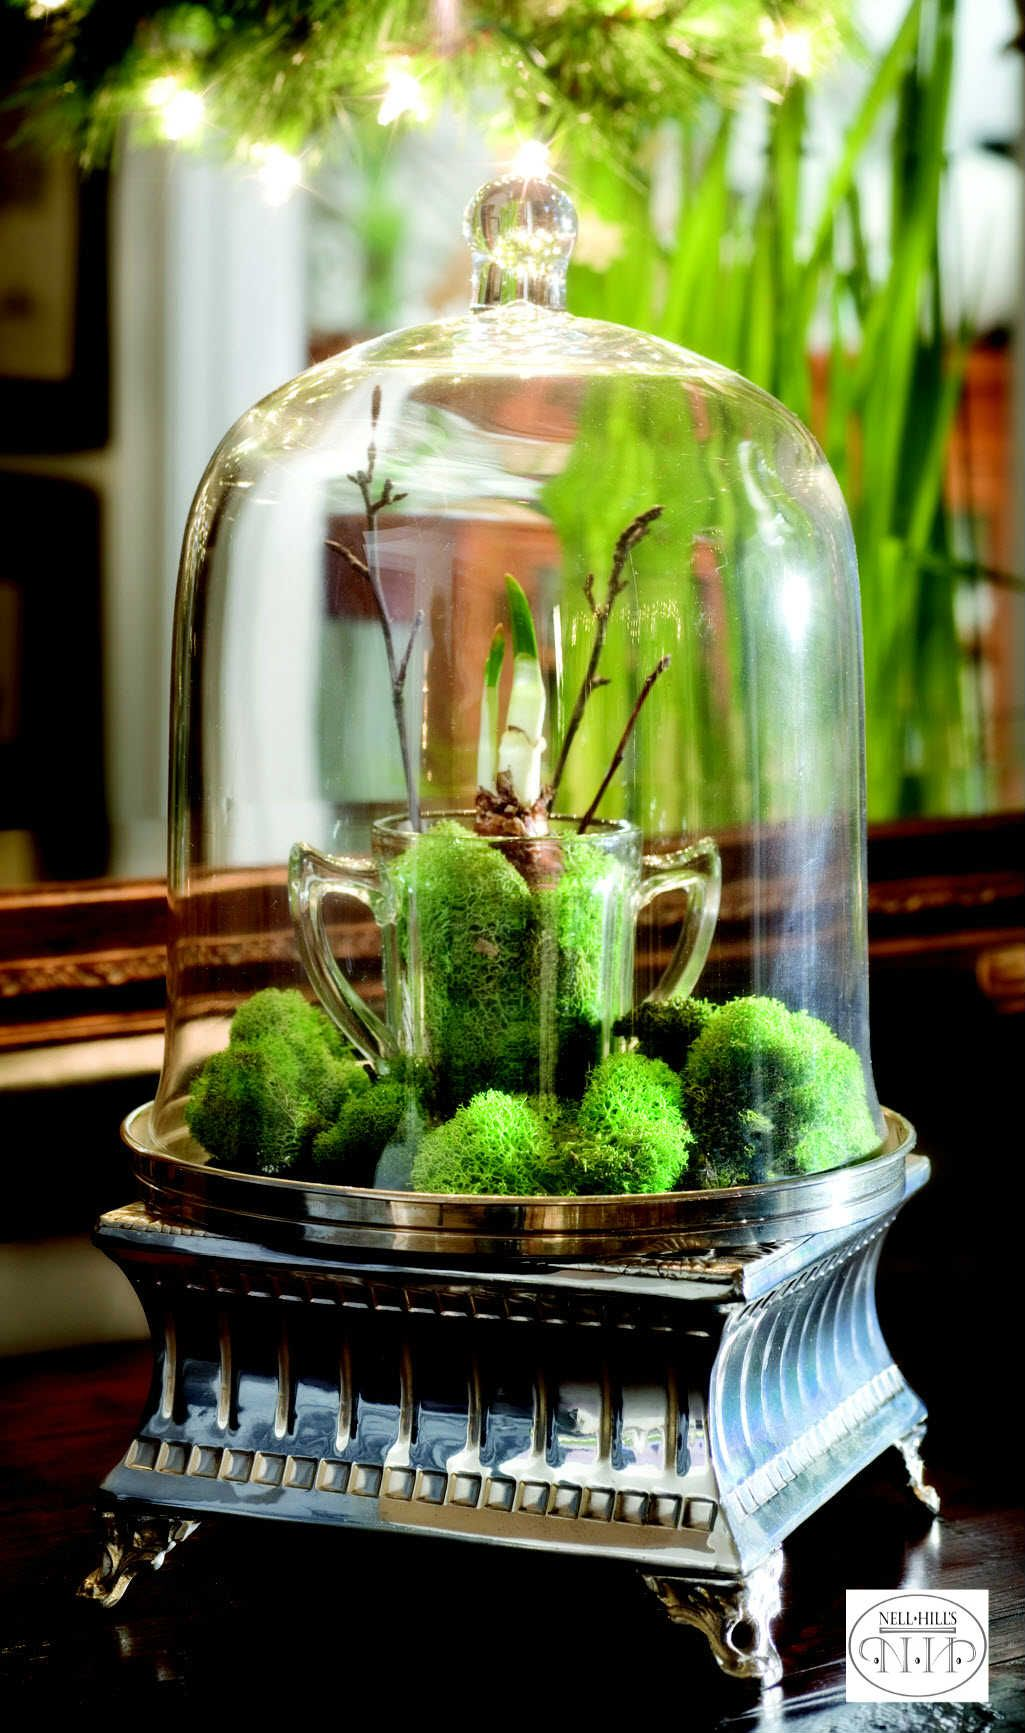 Use a riser and a cloche to make a magical holiday display.